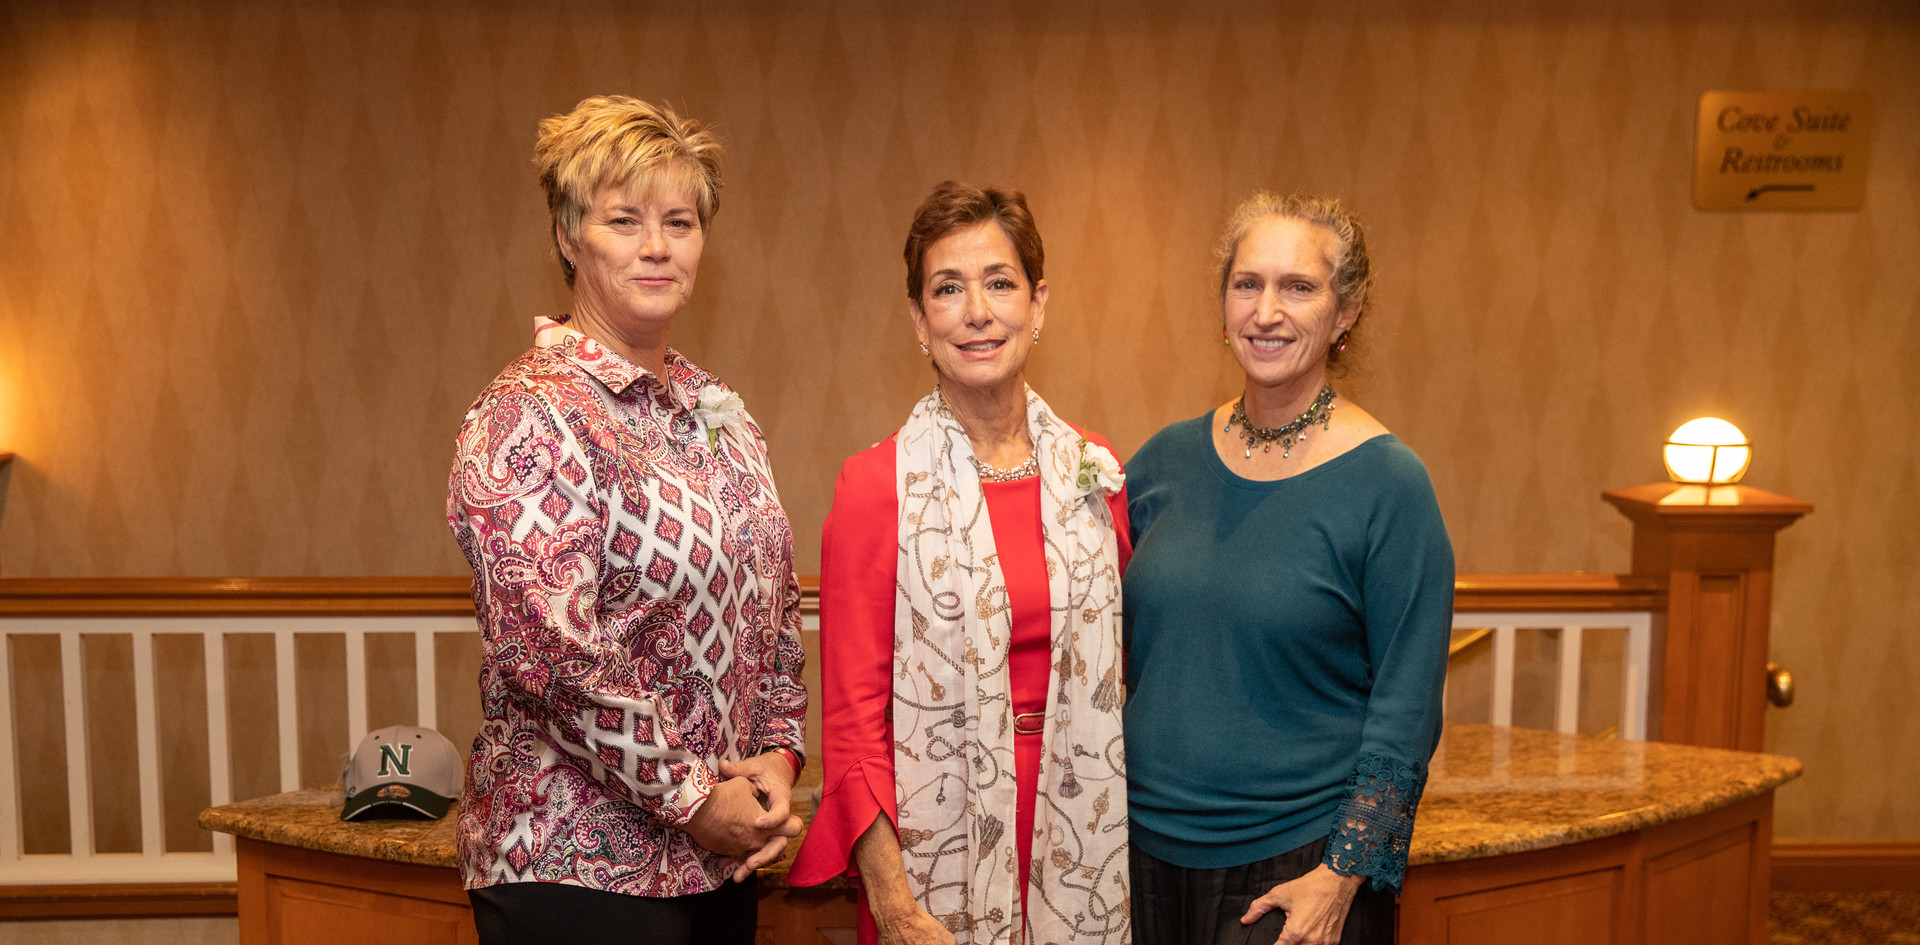 2019 honorees Missy Oman and Maria Marino with 2013 honoree Celia Bobrowsky.  (photo by Josh Molaver)